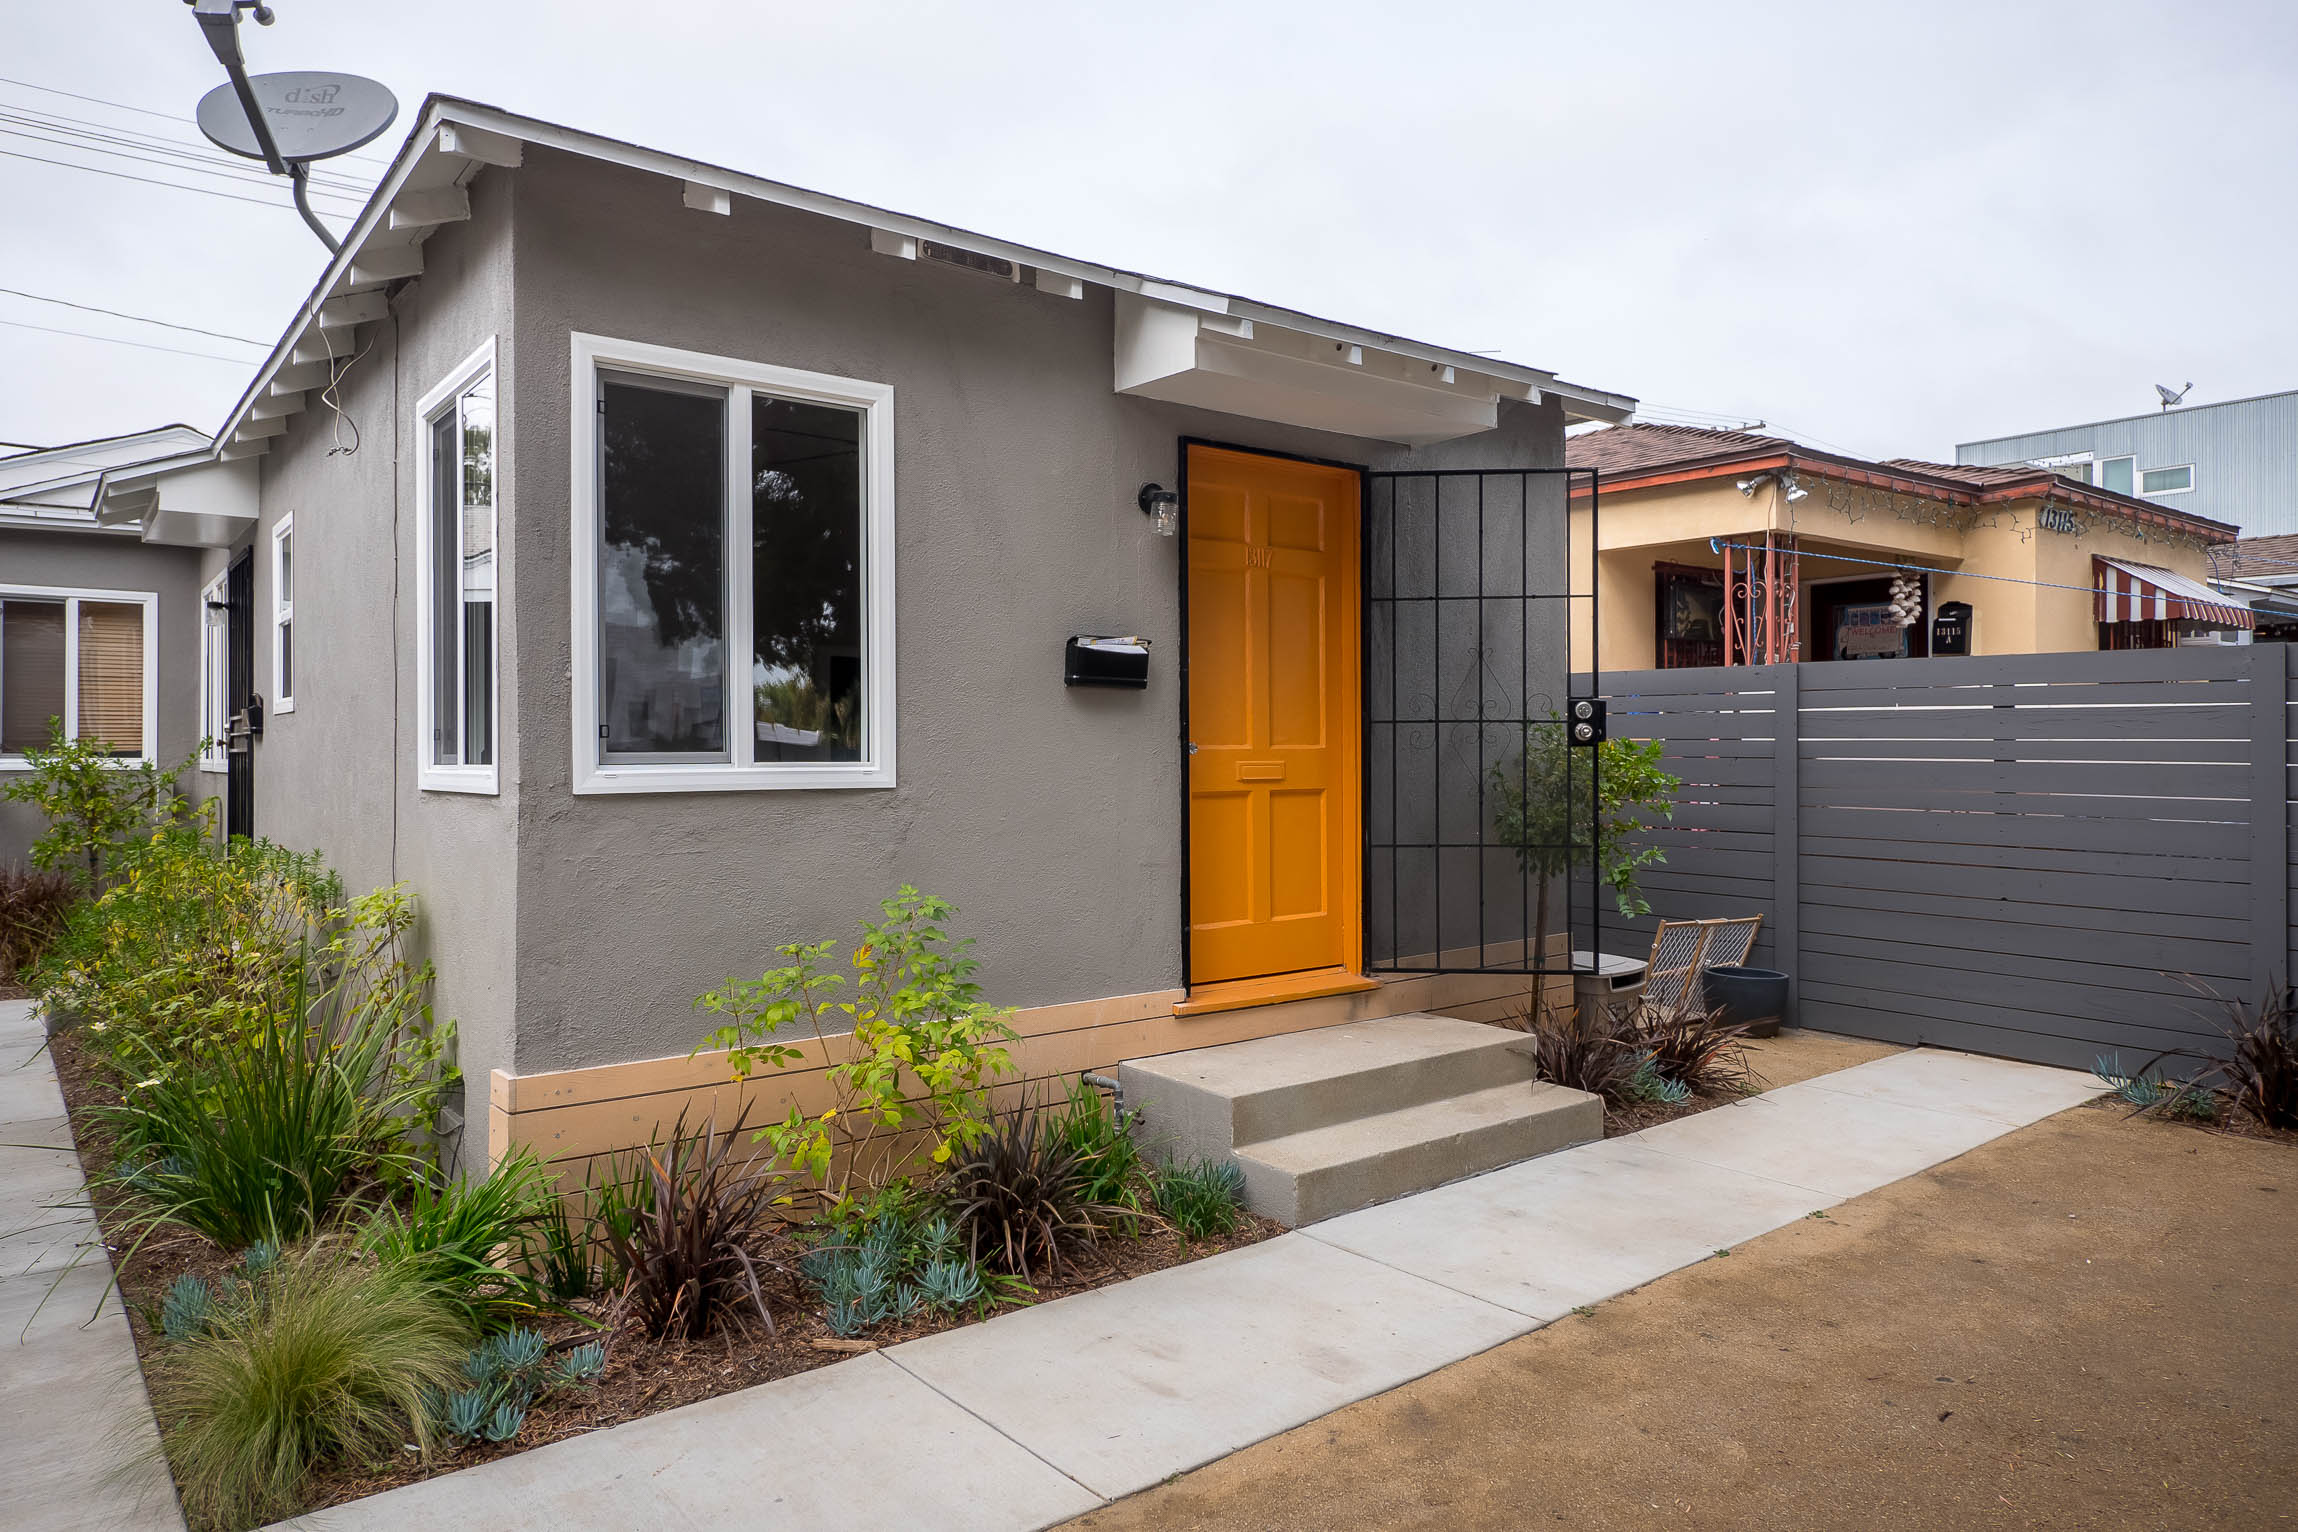 Micro but MOD Bungalow-Style Studio with Large Shared Outdoor Space - ALL Utils Included!